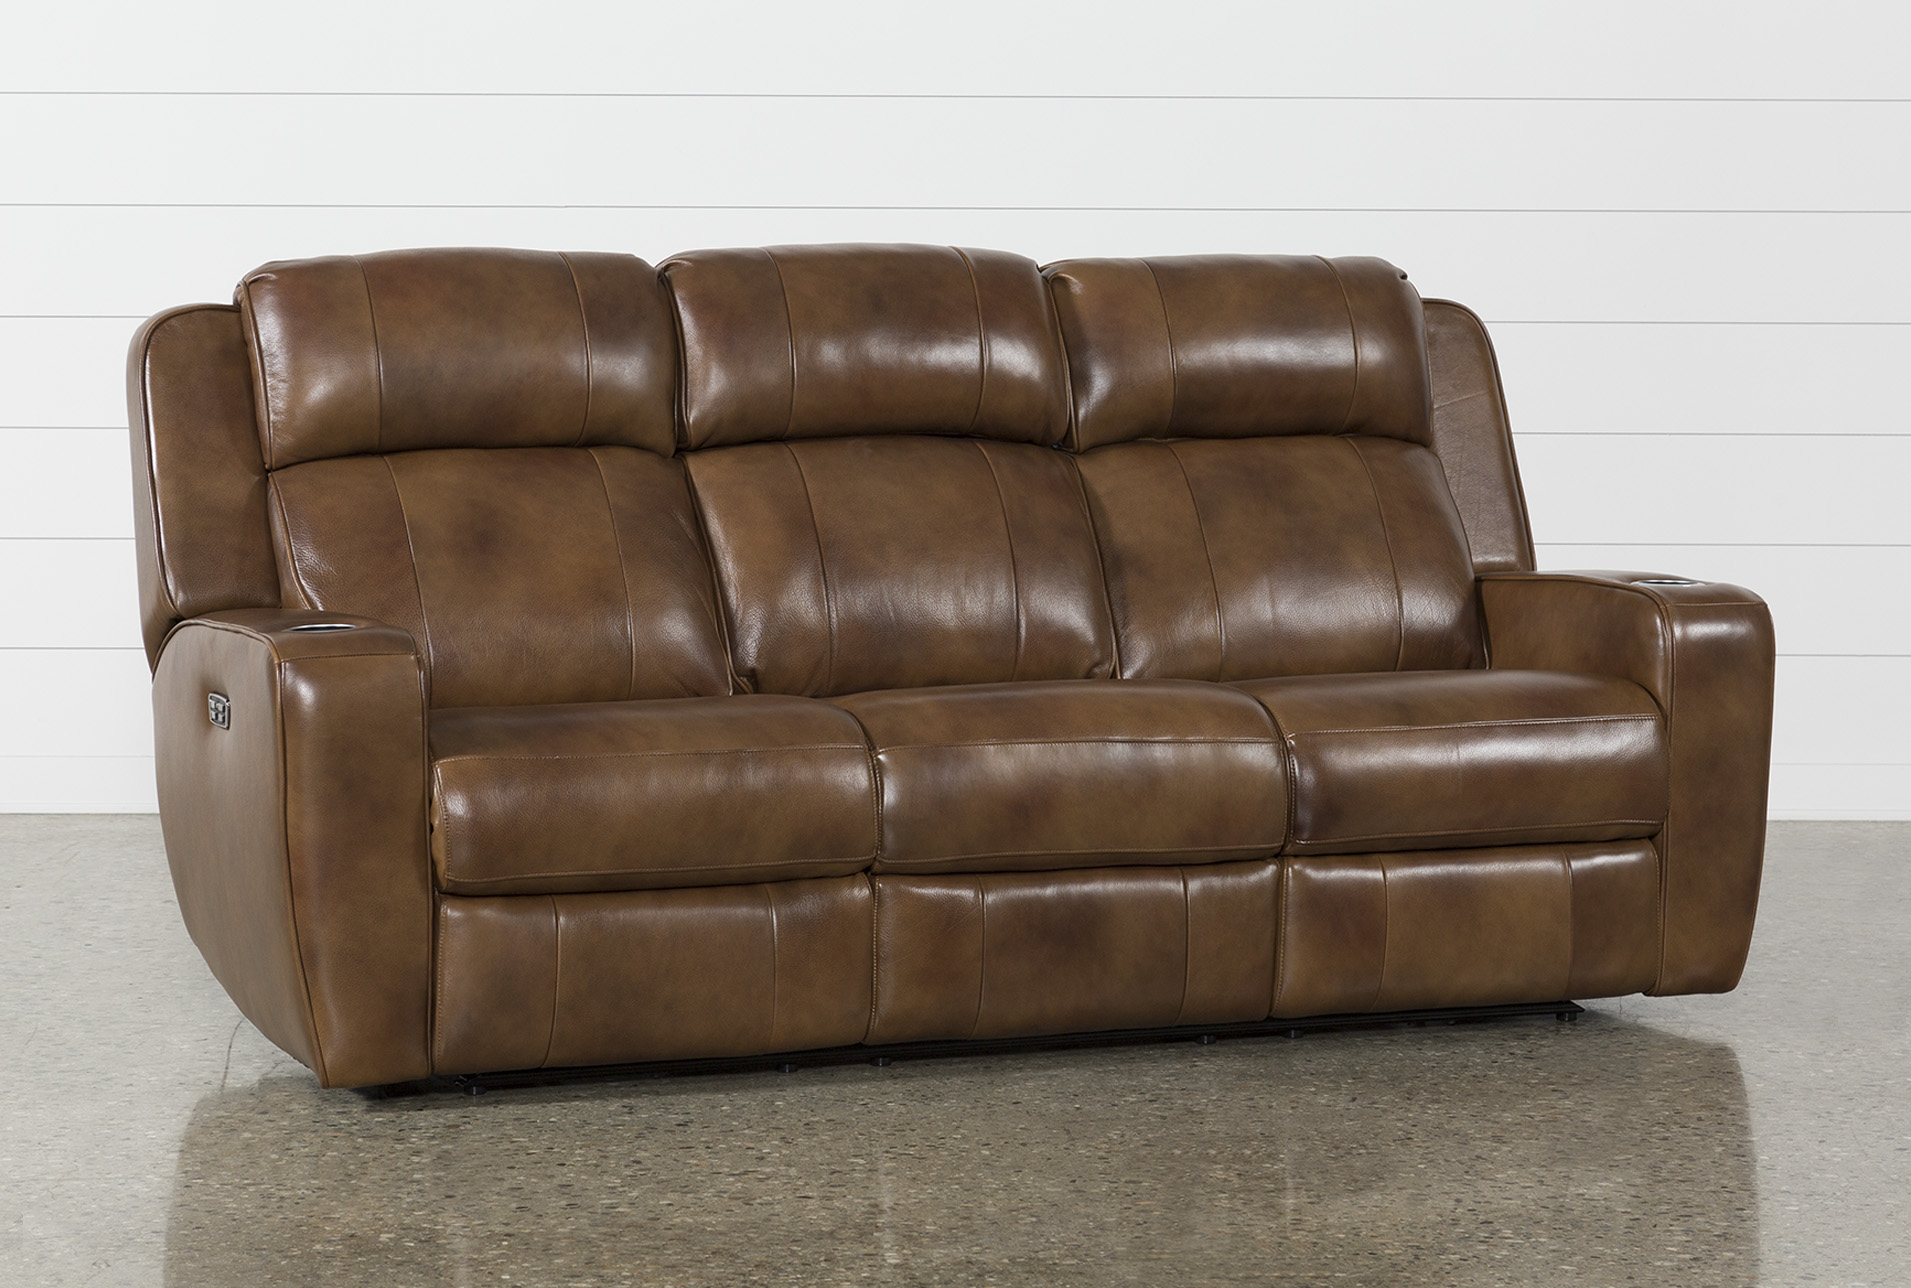 phelps leather power reclining sofa w power headrest usb living rh livingspaces com leather power reclining sofa with console leather power reclining sofa and loveseat